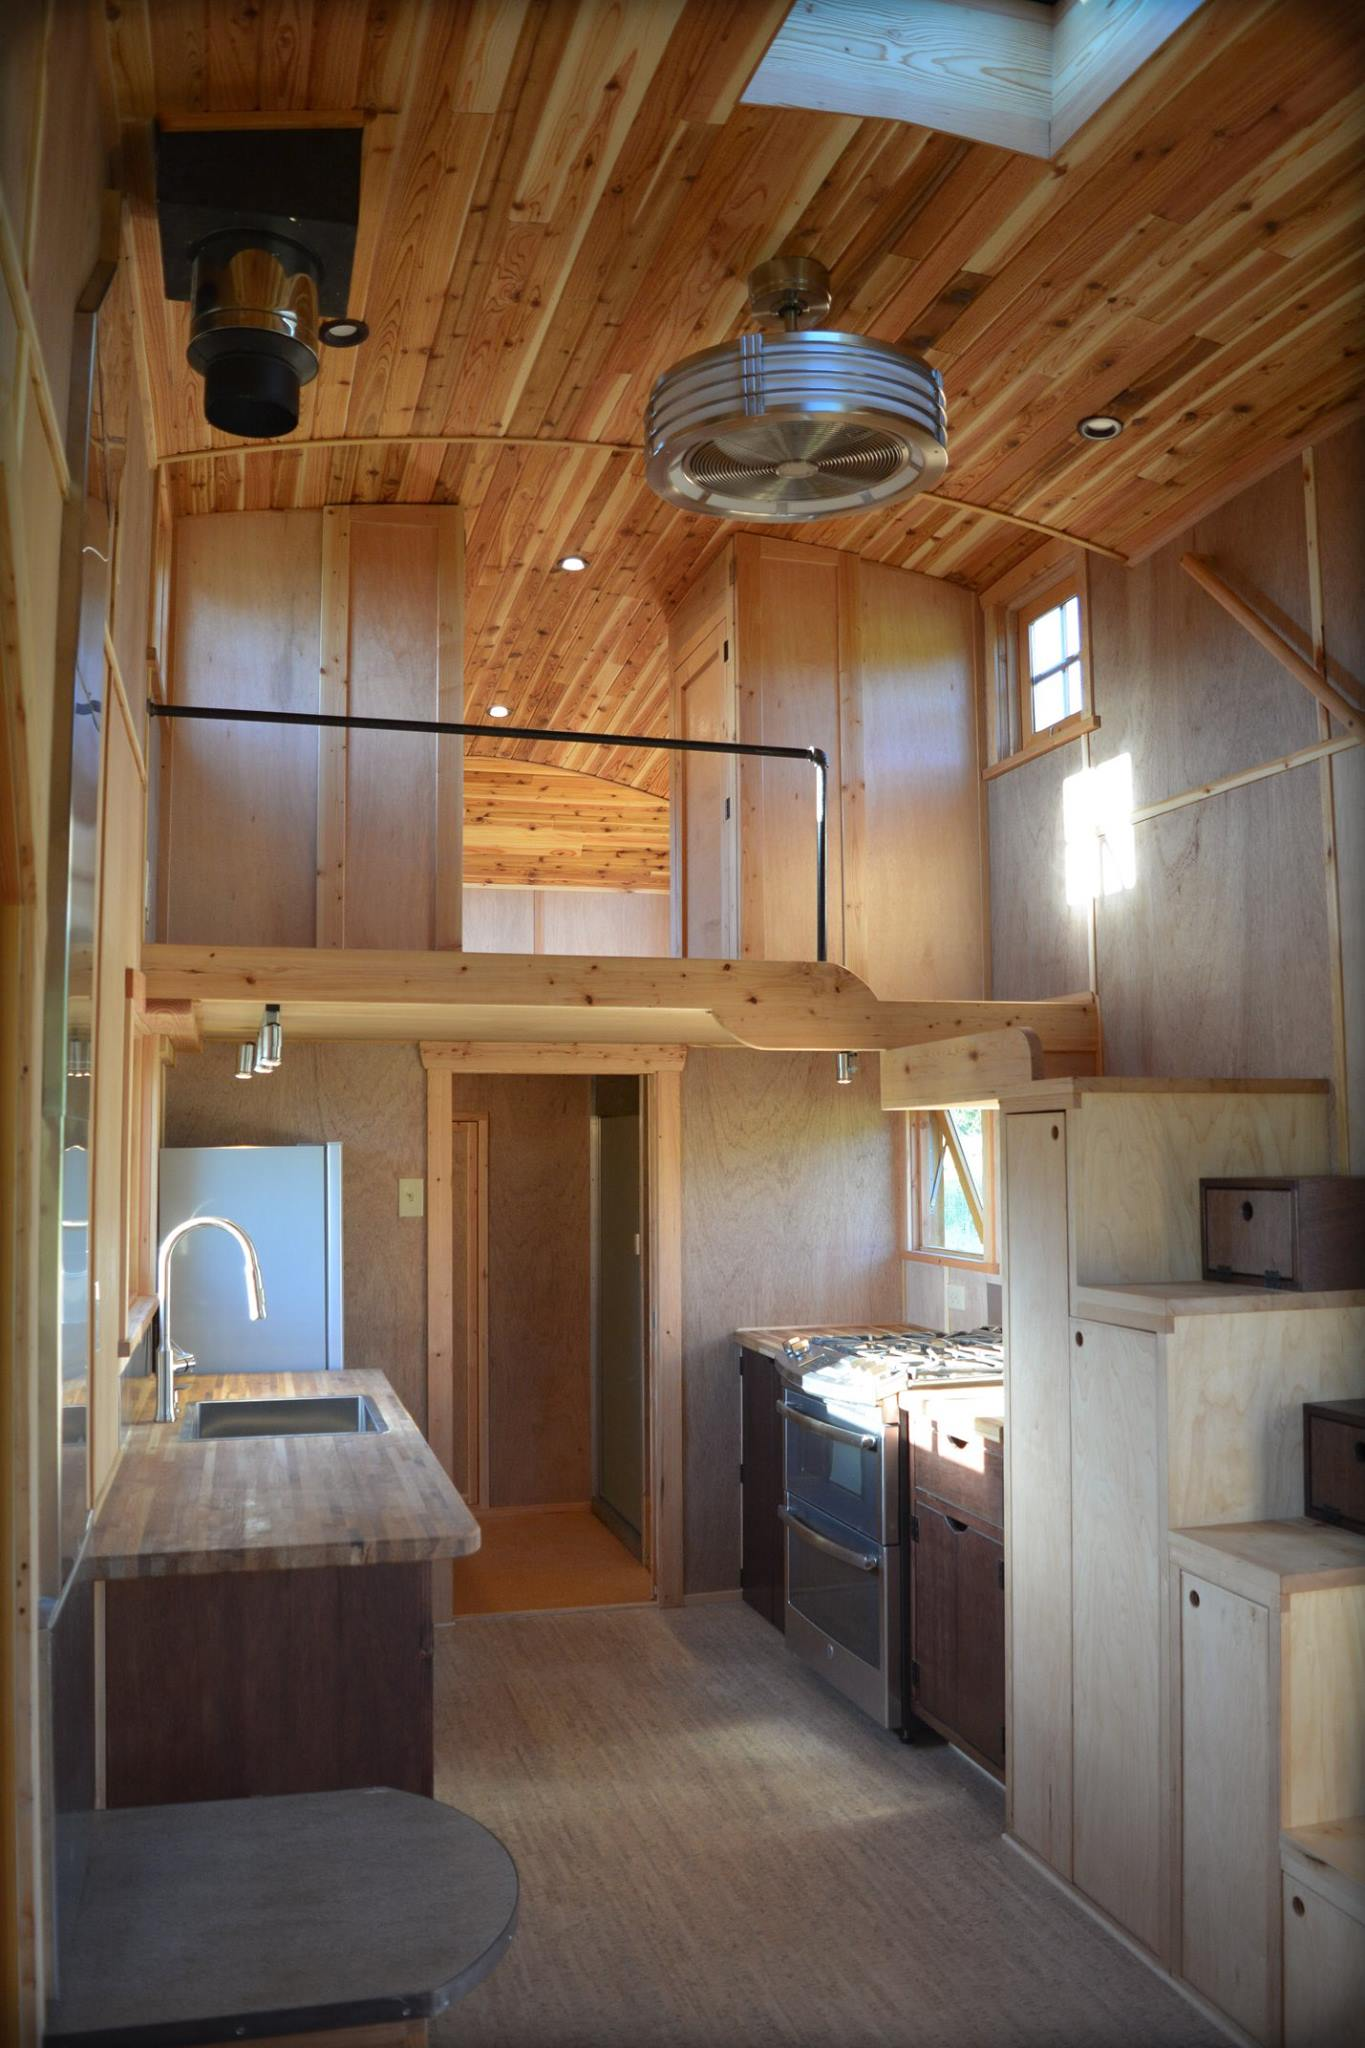 New Tiny House Lives Large With Extra-High Ceiling and Fun Curves ...